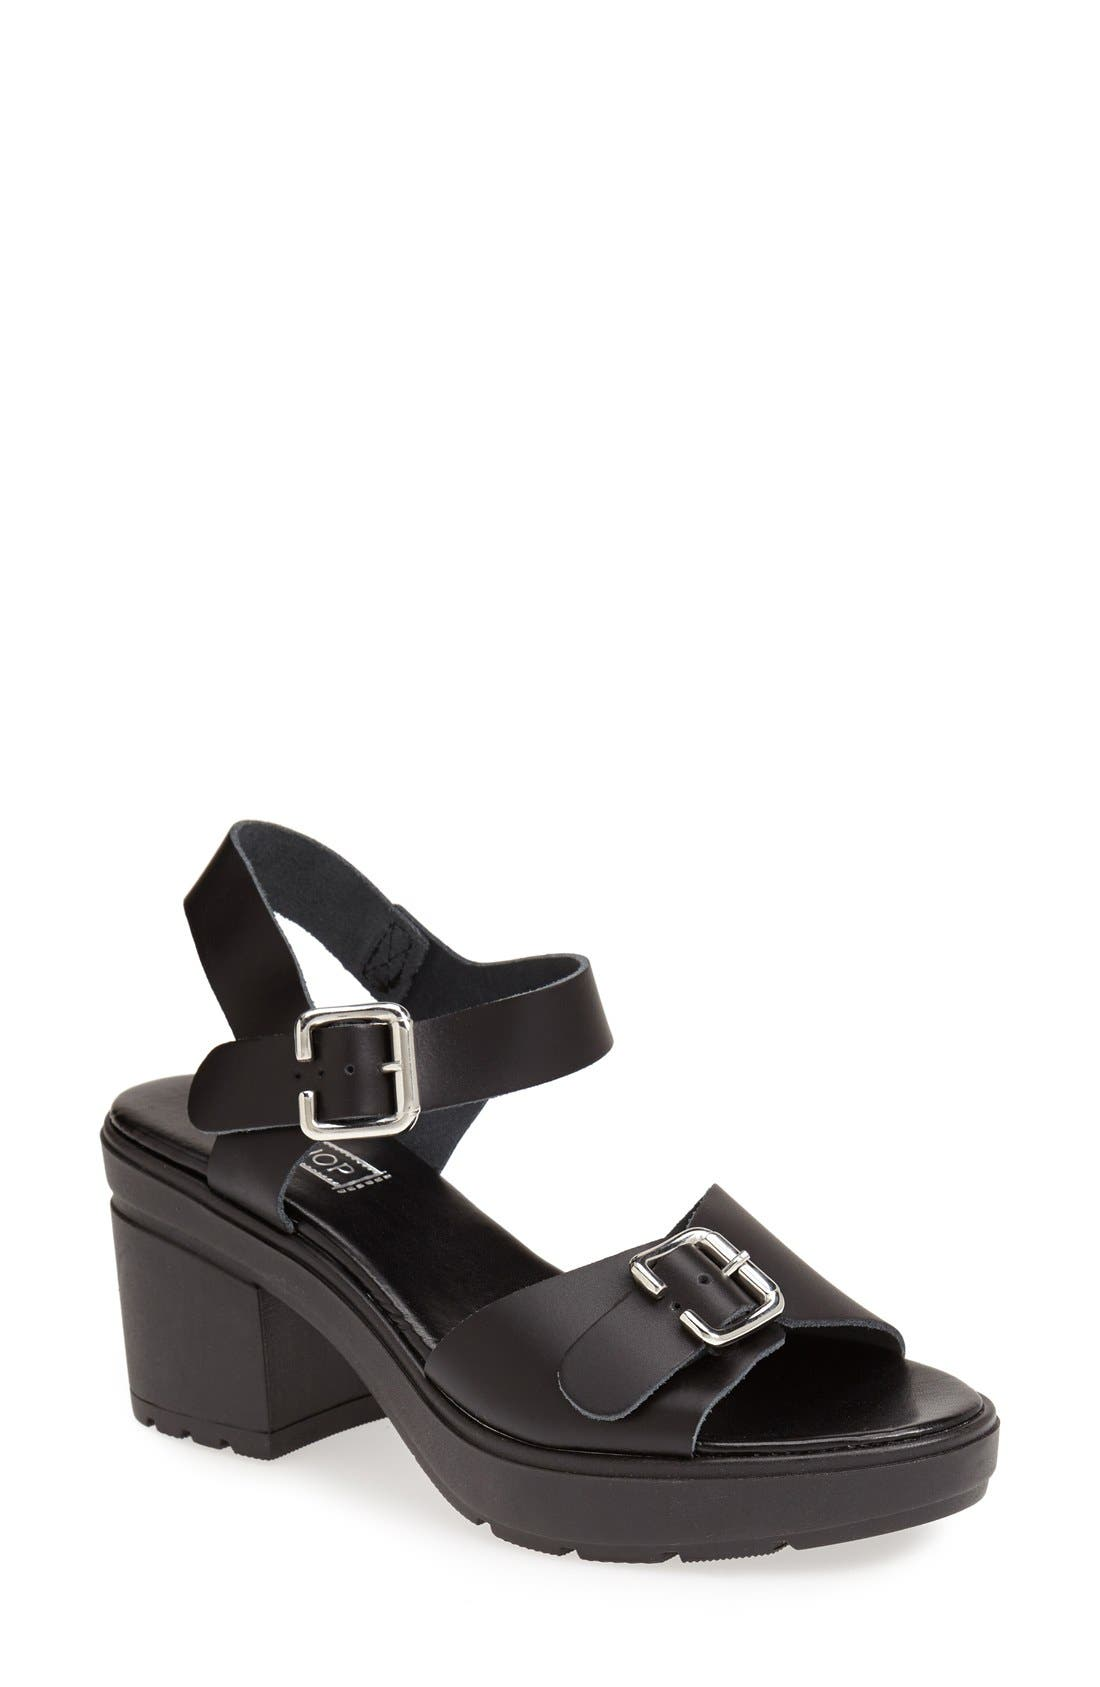 Alternate Image 1 Selected - Topshop 'Niece' Platform Leather Sandal (Women)